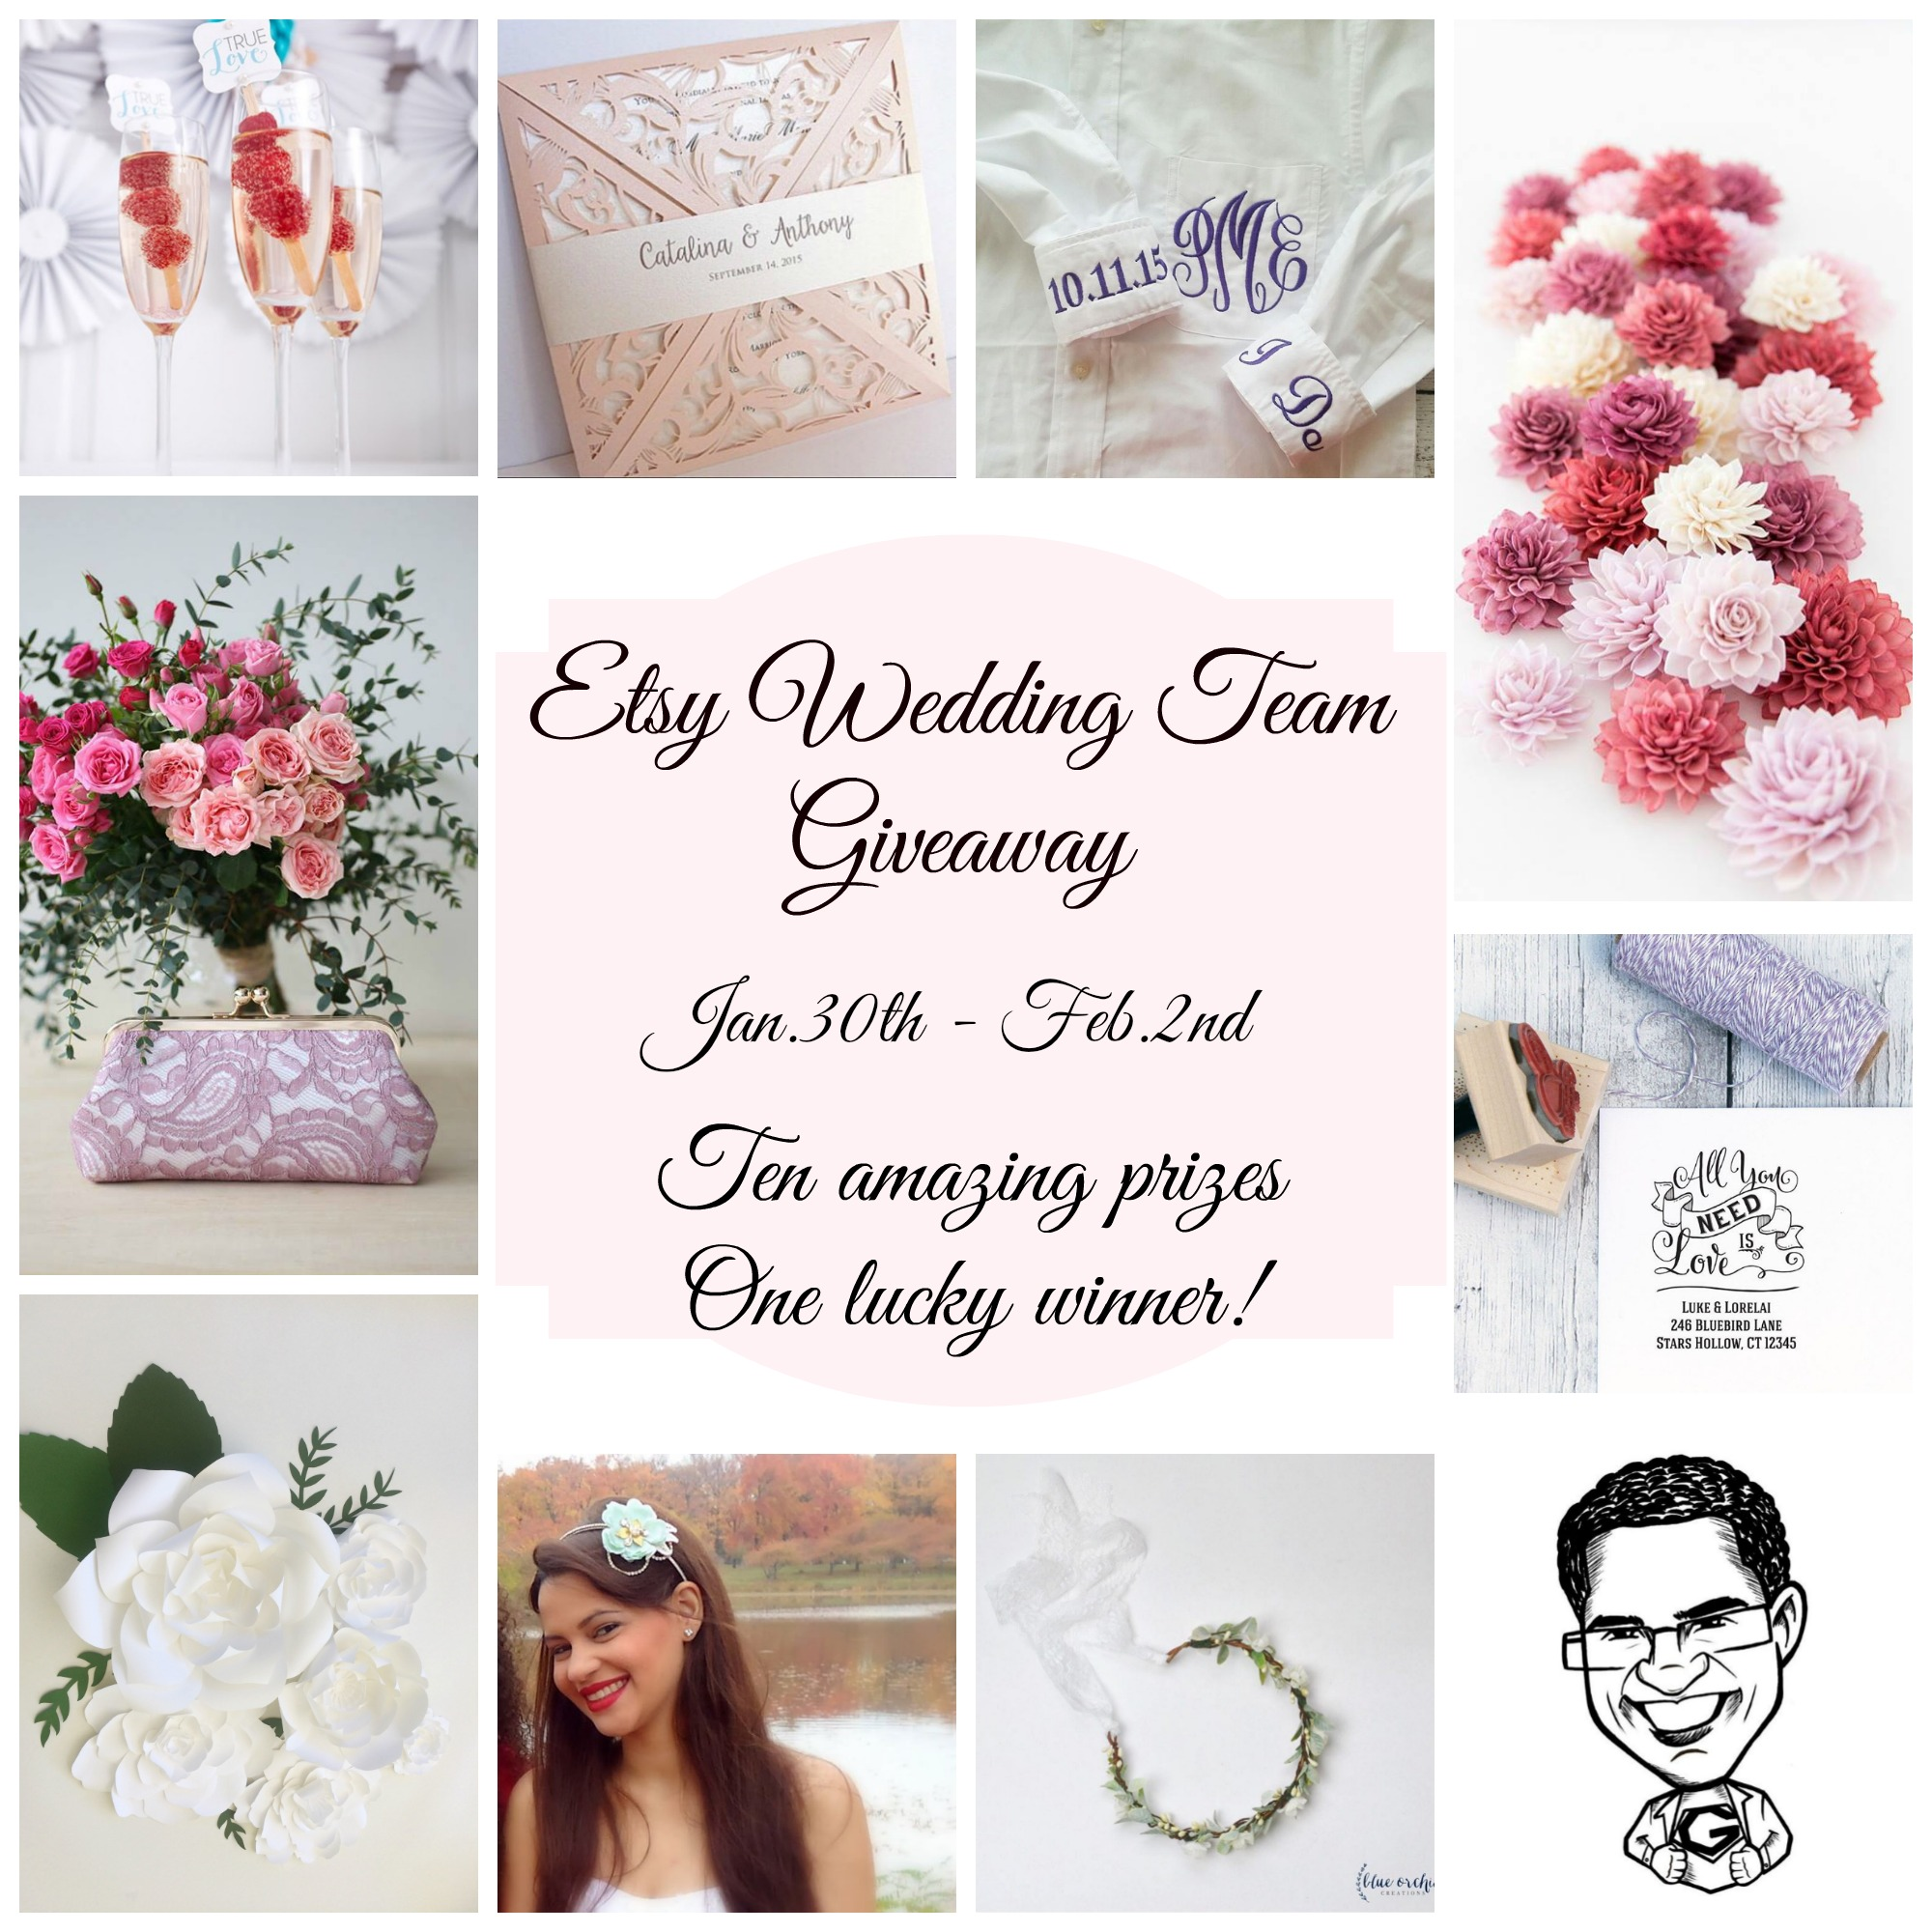 Etsy Wedding Team Giveaway Jan.30-Feb.2nd